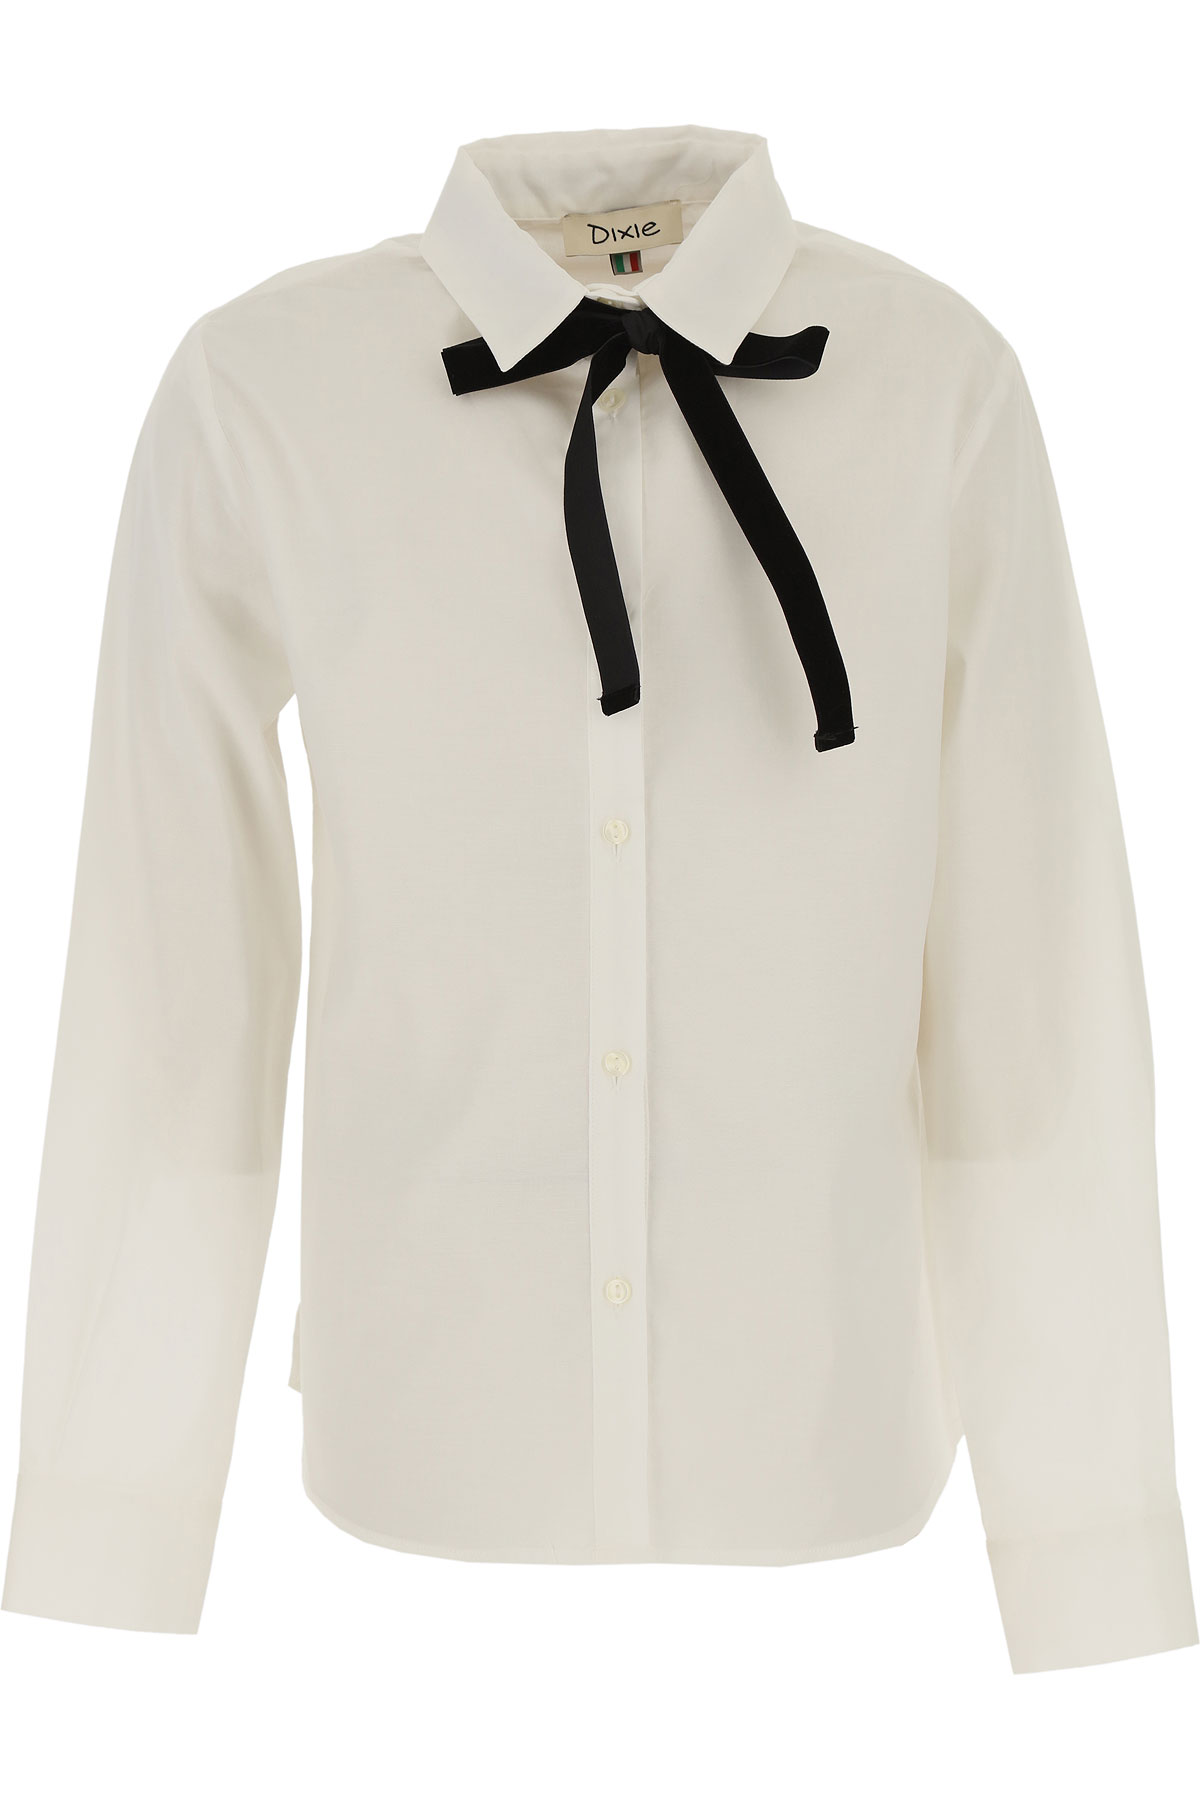 Dixie Kids Shirts for Girls On Sale, White, Cotton, 2019, M